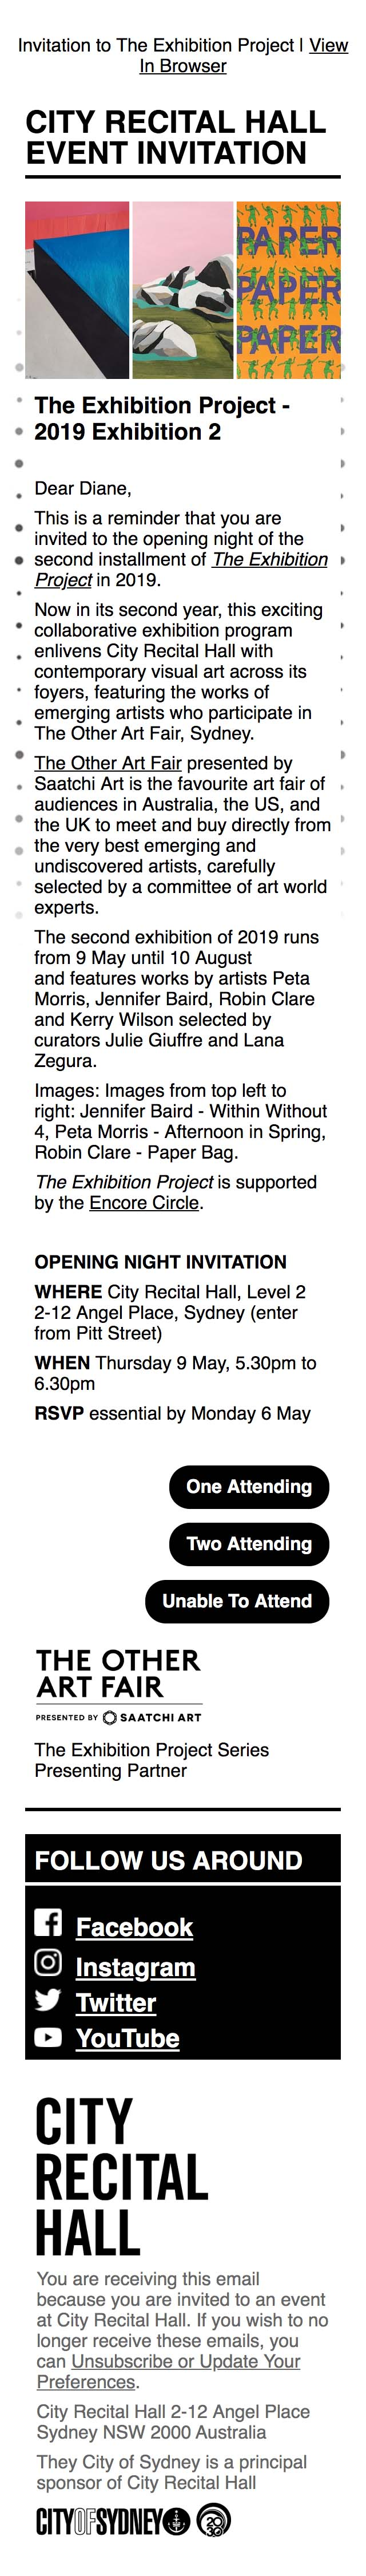 Reminder - You're Invited: Opening of The Exhibition Project - mobile view